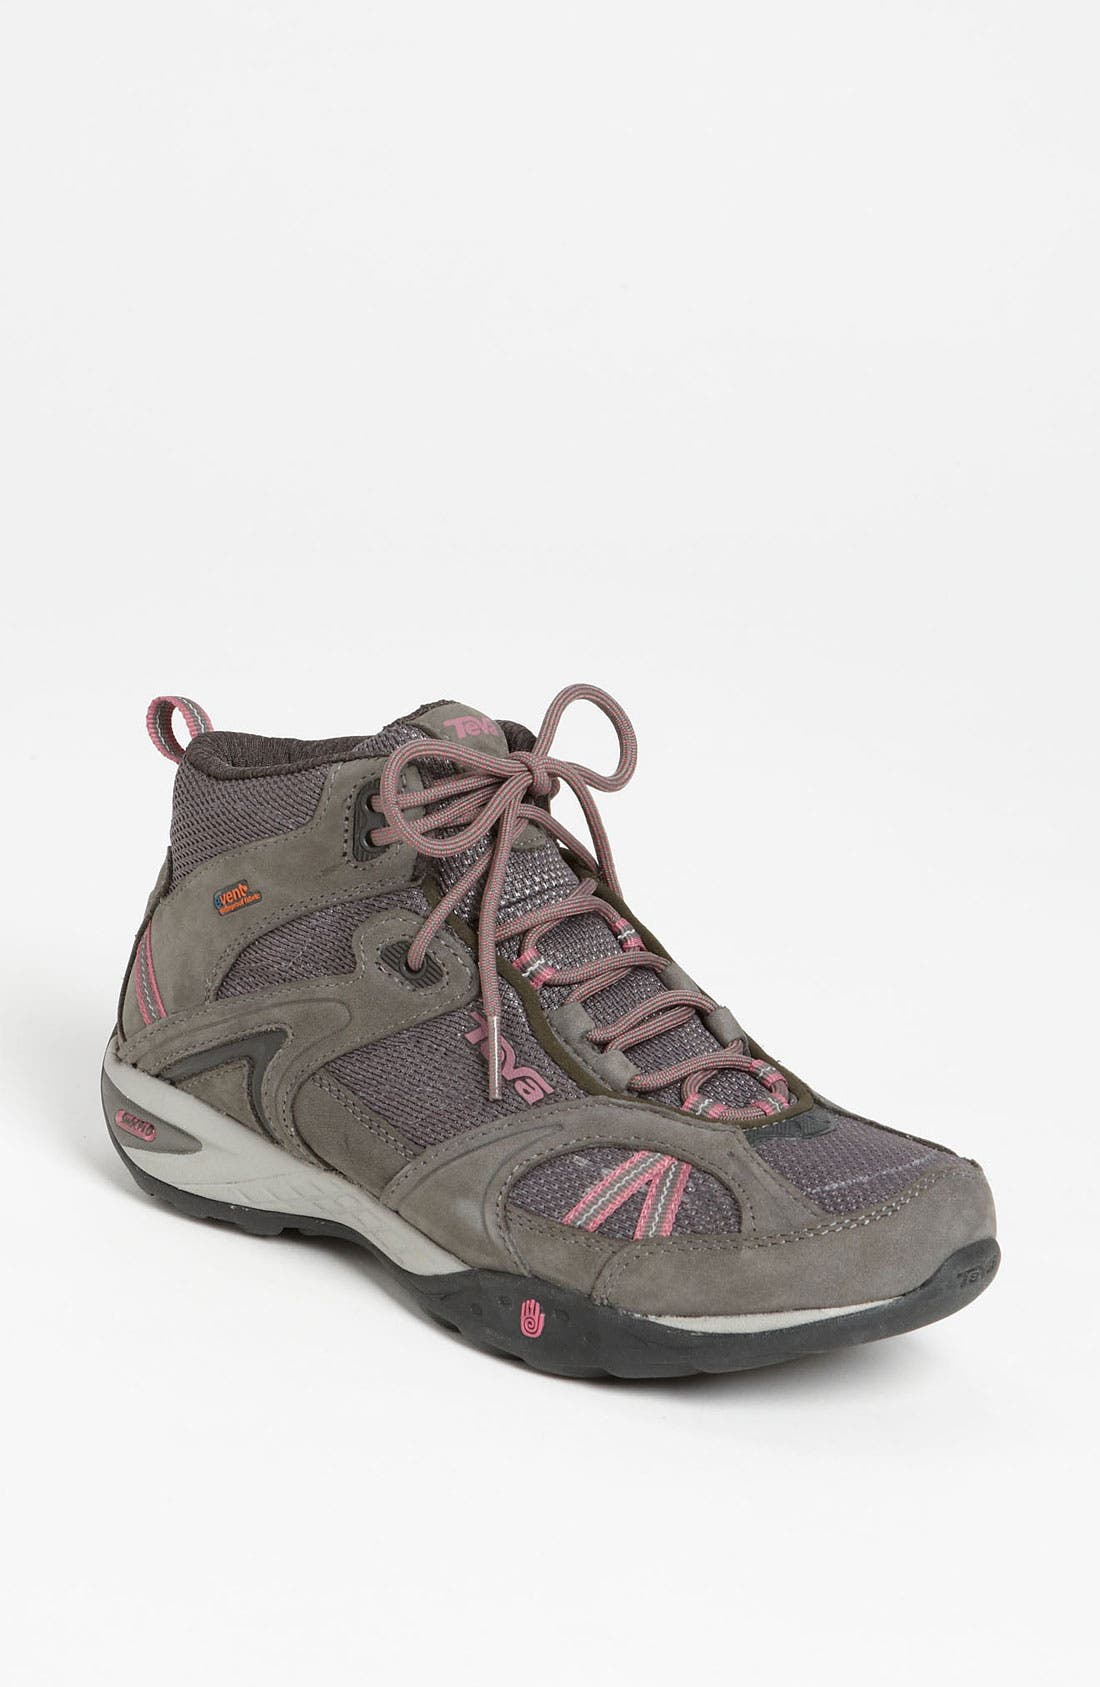 Main Image - Teva 'Sky Lake Mid eVent®' Hiking Boot (Women)